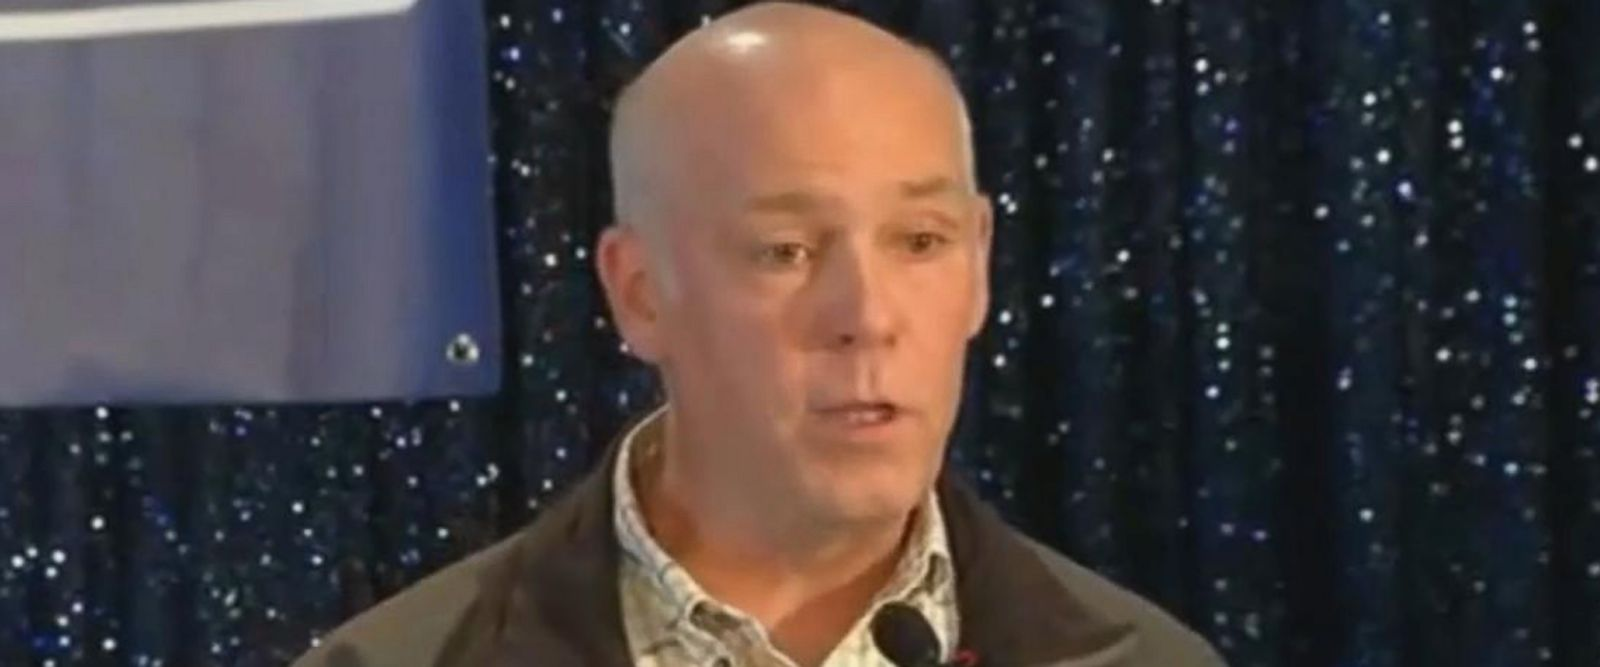 VIDEO: Republican Greg Gianforte delivers victory speech after winning Montana special election